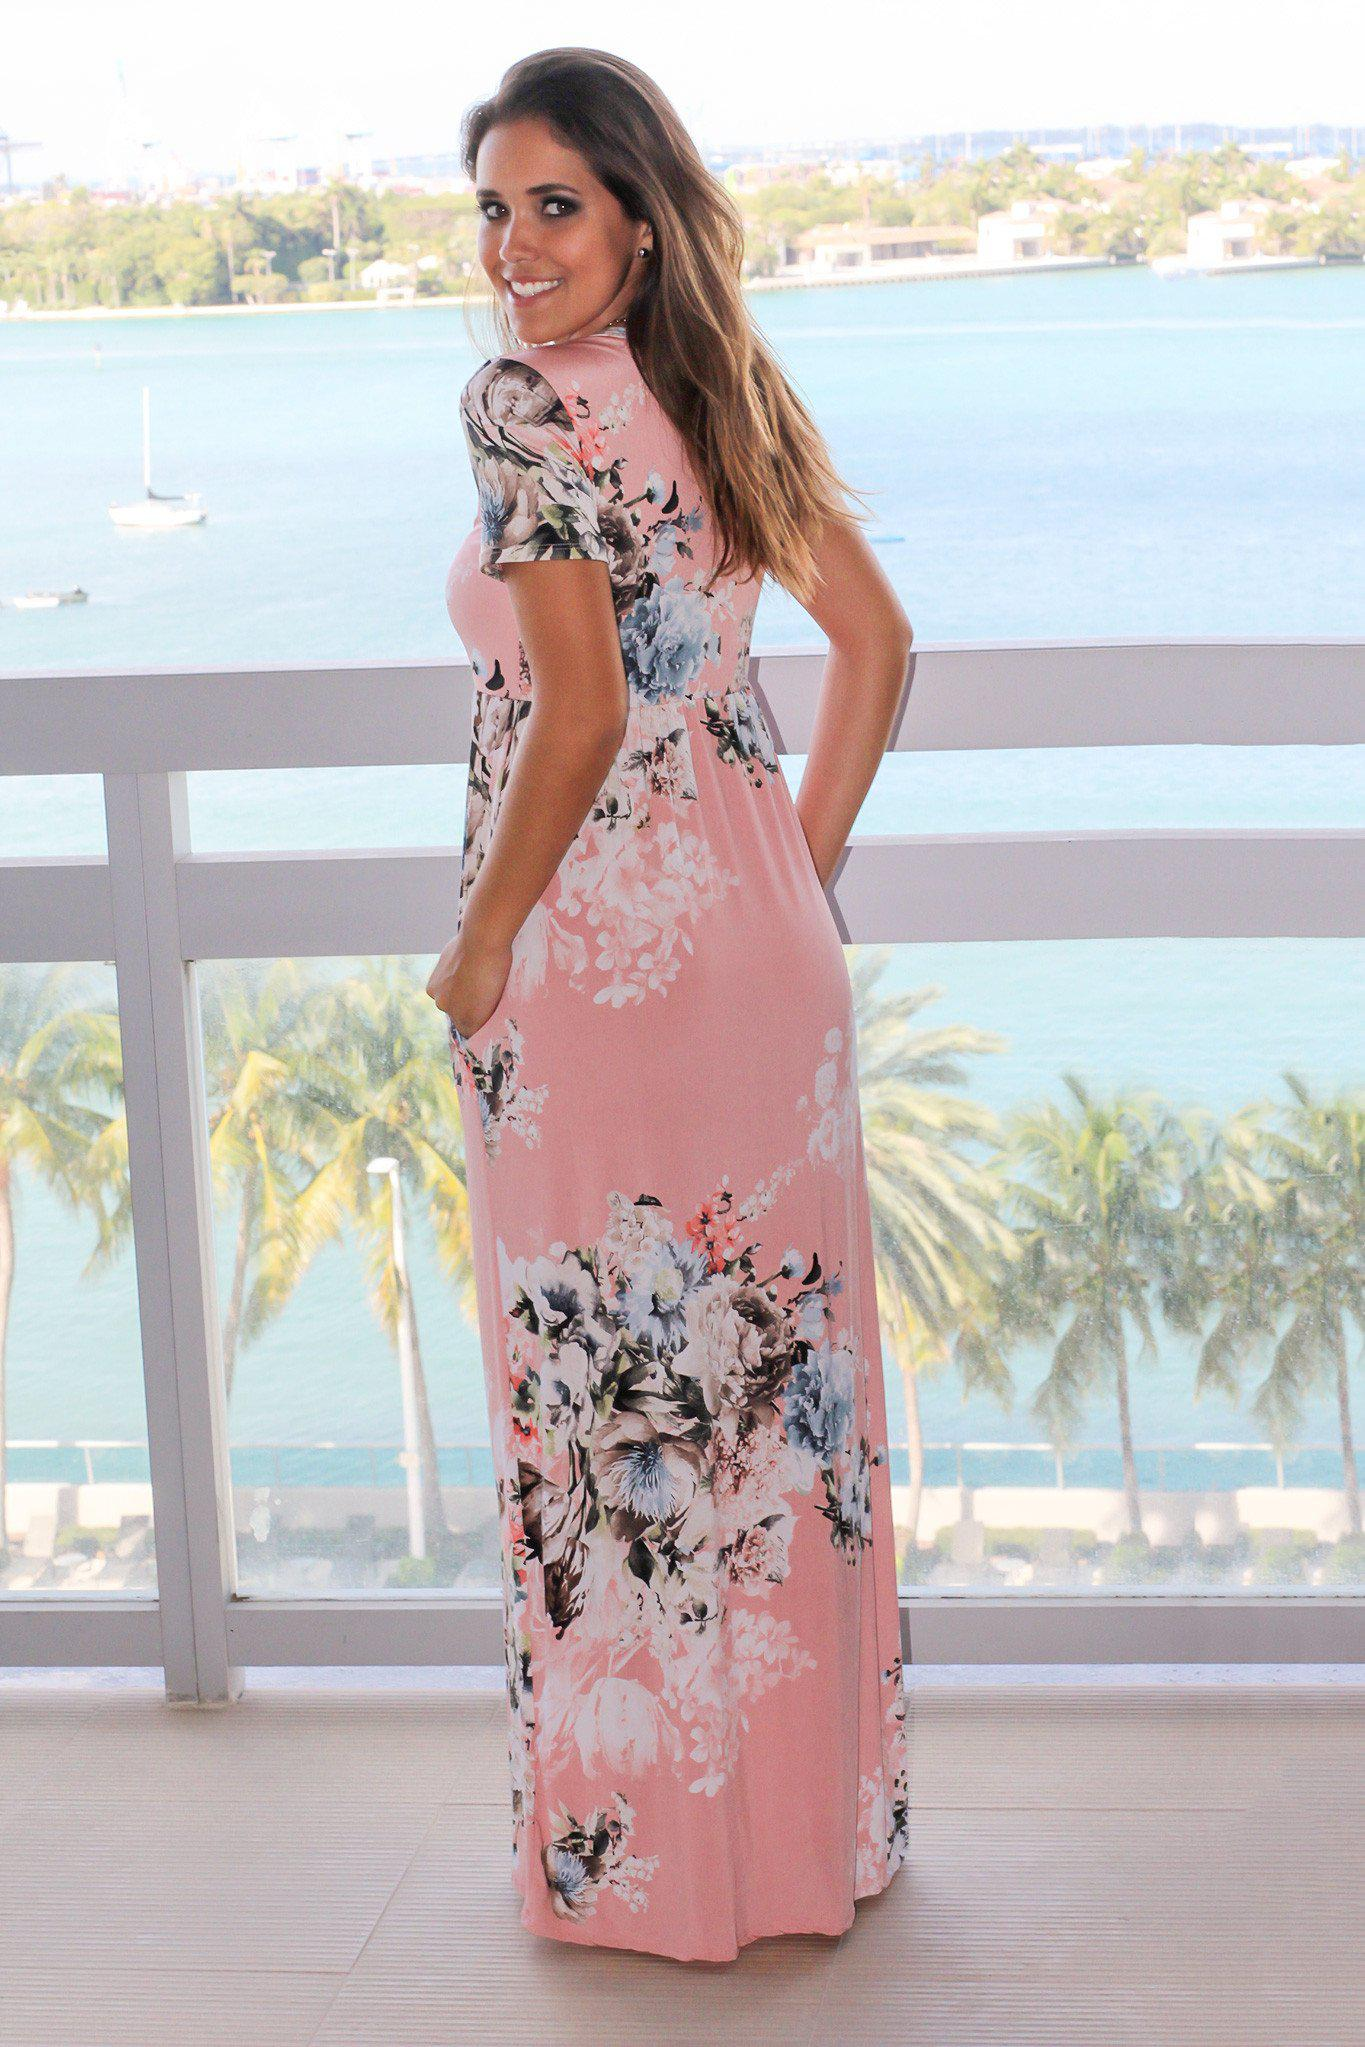 Blush Floral Maxi Dress with Short Sleeves